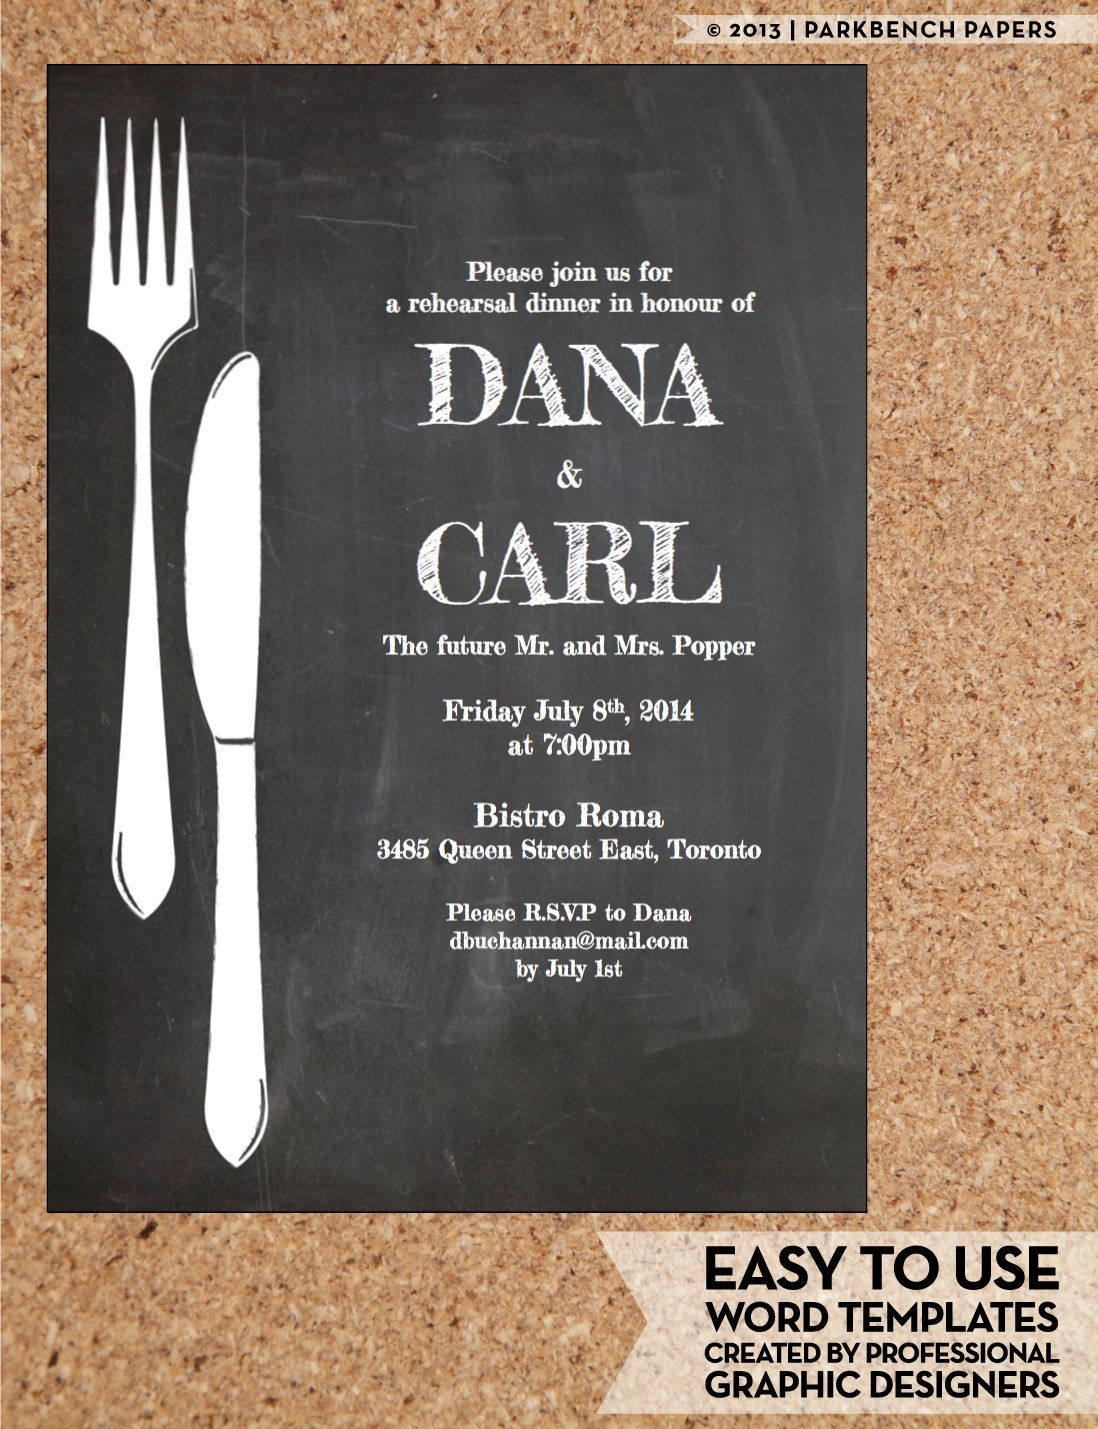 rehearsal dinner invitation chalkboard chic diy word template